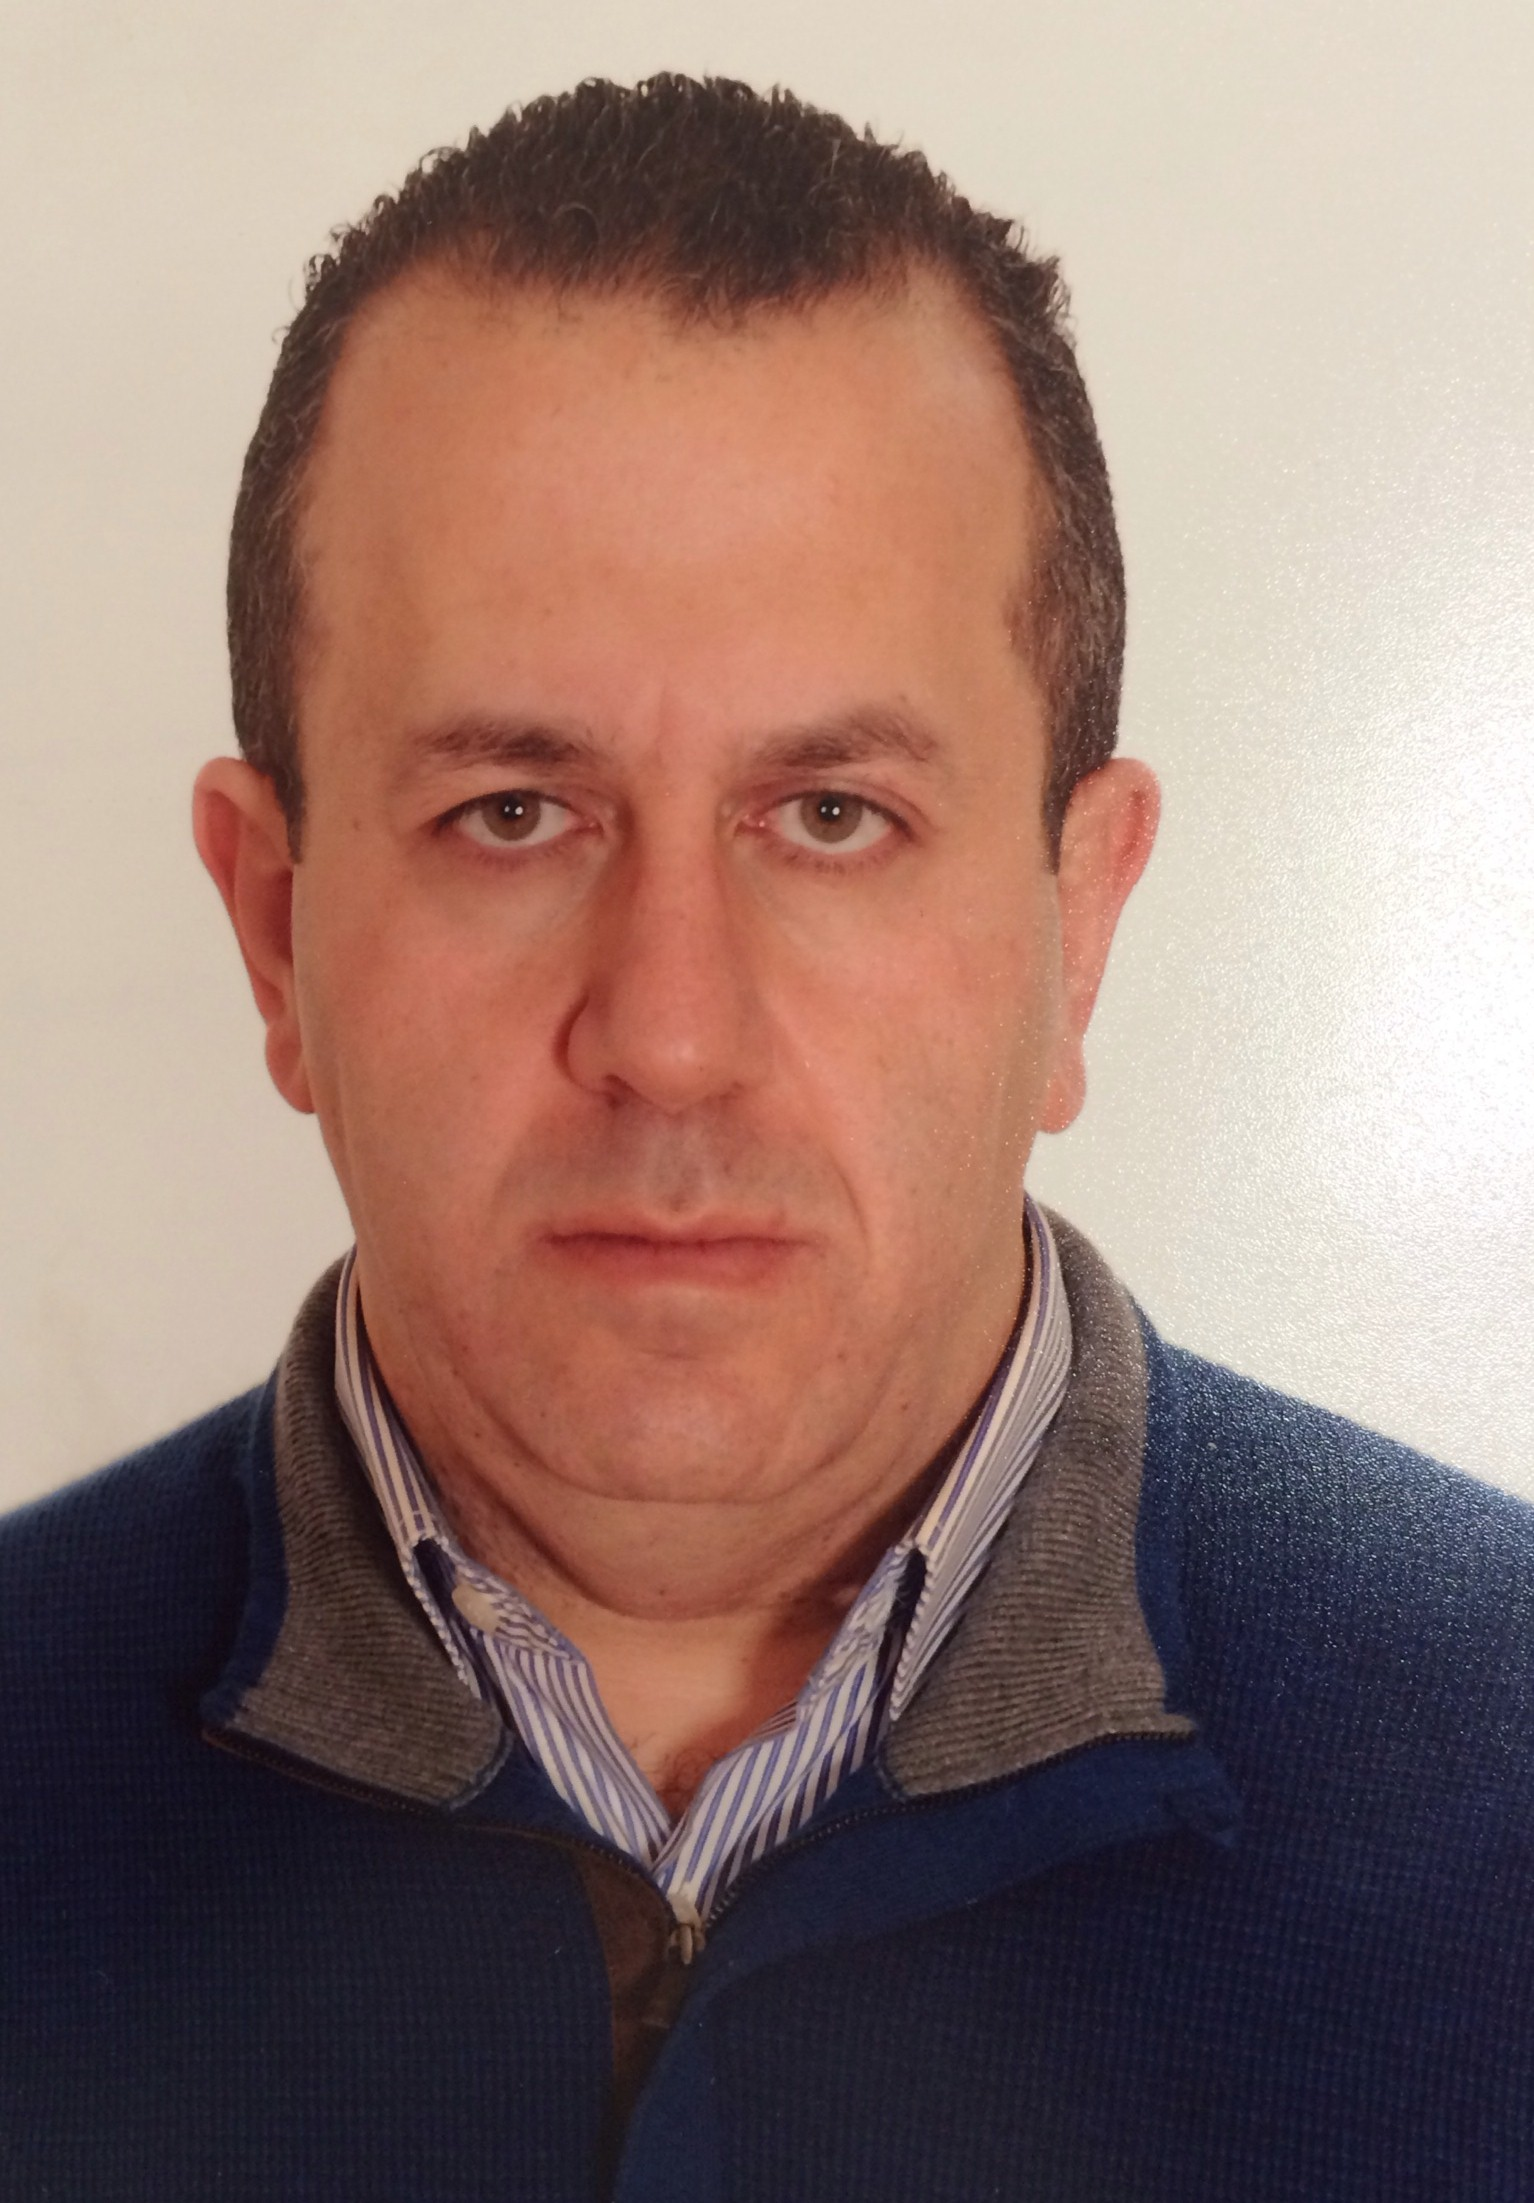 faculty guests cardioalex dr hadi skouri received his medical degree in 1998 from the american university of beirut he completed his internal medicine residency and